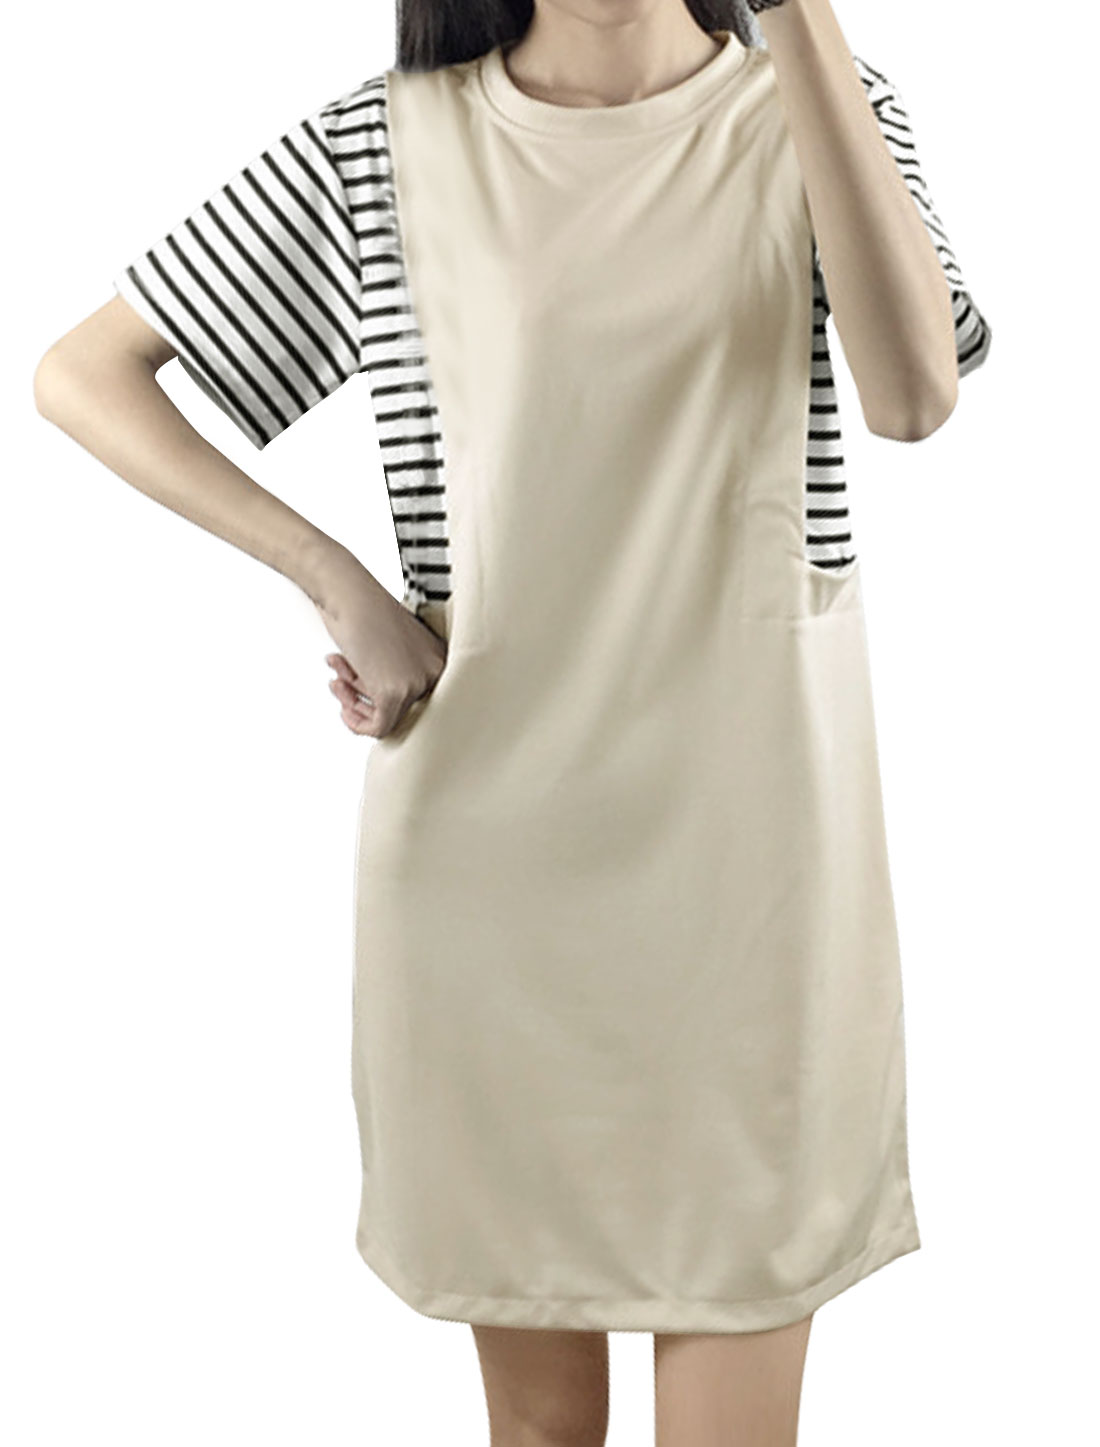 Women Short Sleeves Crew Neck Stripes Paneled Shift Dress Beige S